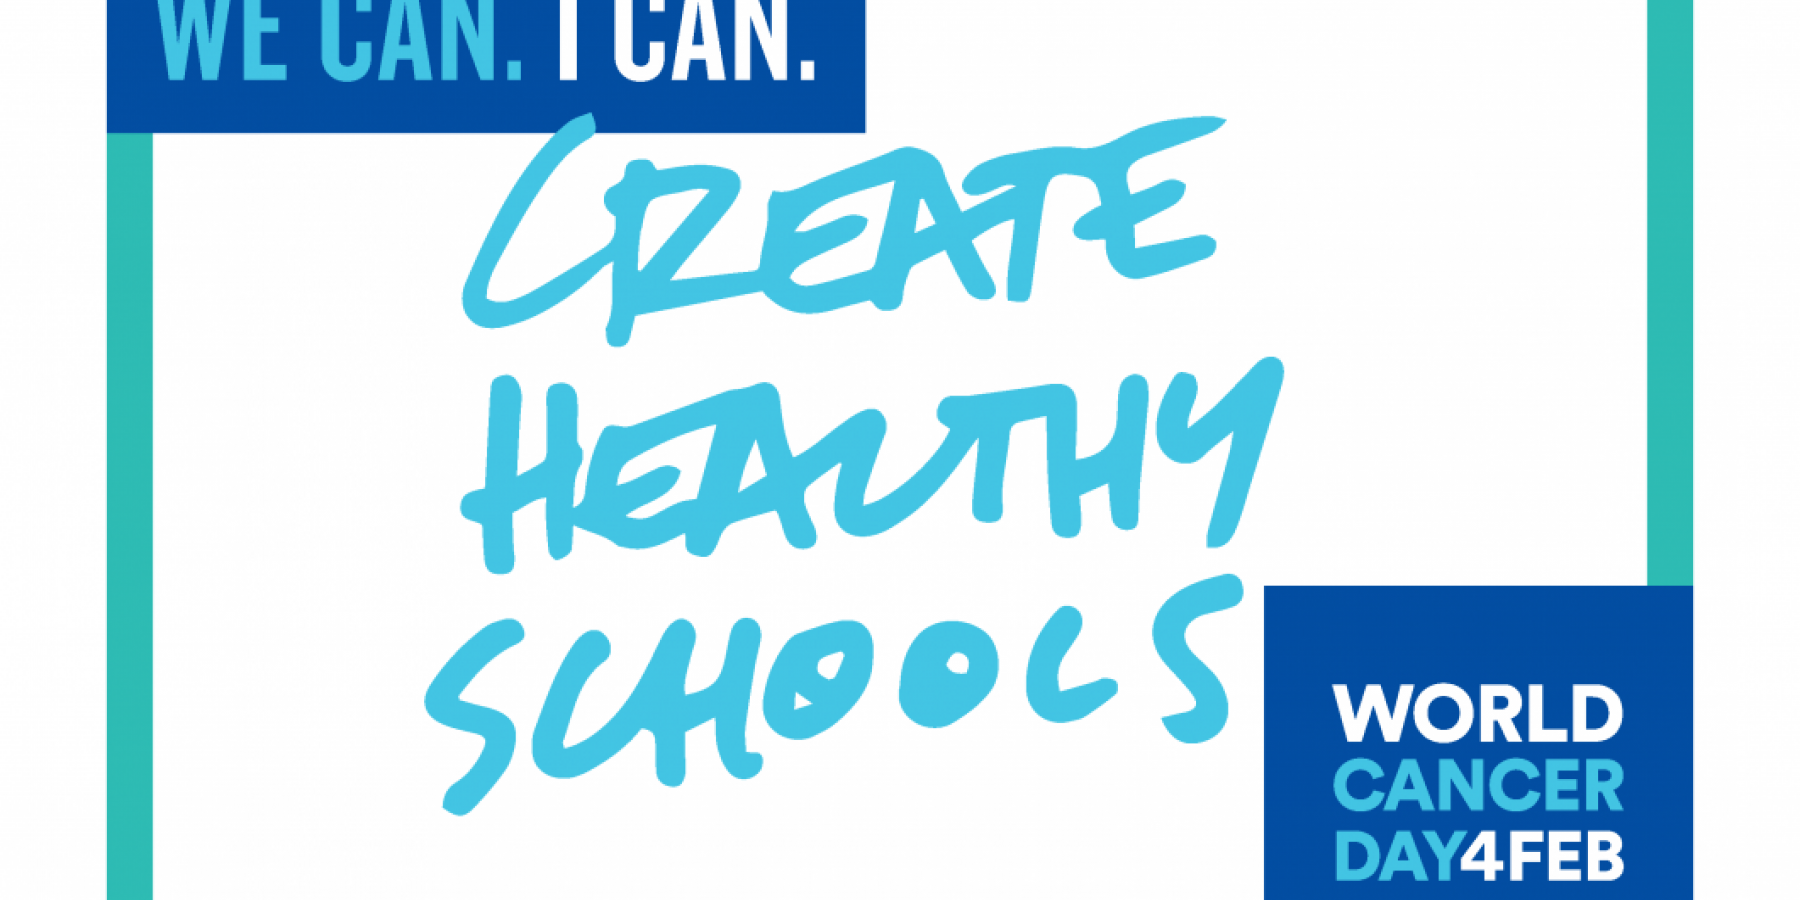 Graphic for World Cancer Day 2018 that says, Create Healthy Schools